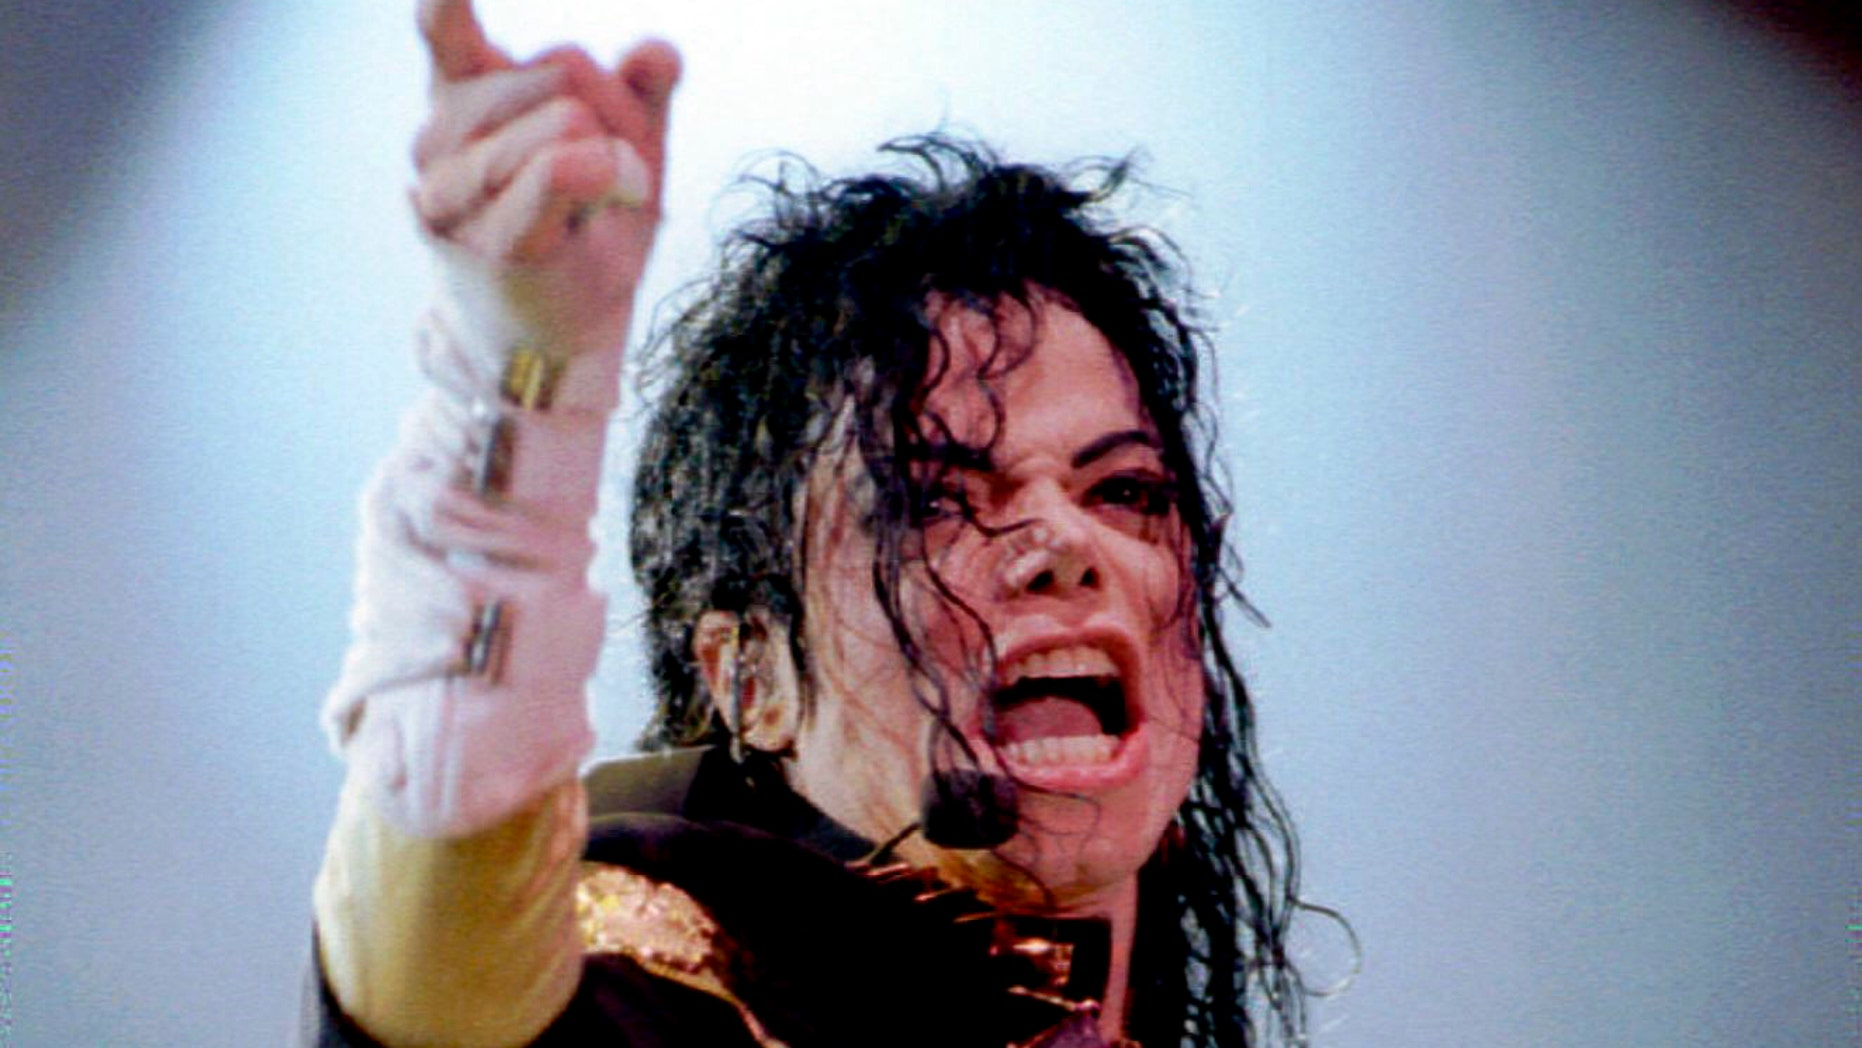 December 12, 1992. Michael Jackson performs at the Tokyo Dome in the opening show of his Japanese tour.